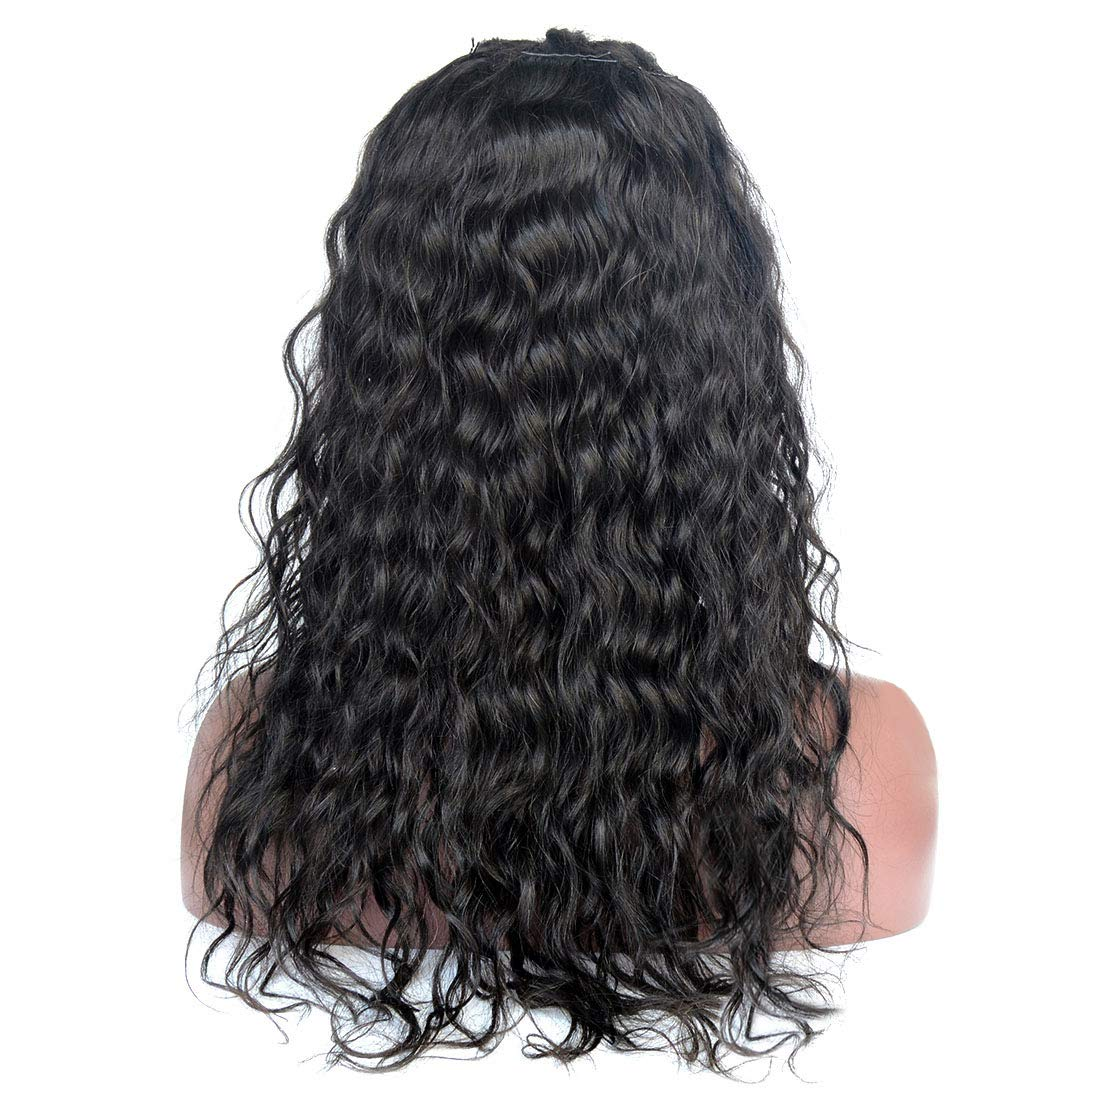 Amazon.com : Sunwell Full Lace Human Hair Wigs with Baby Hair Virgin Brazilian Human Hair Wigs for Black Women Water Wave 130% Density Natural Color 10inch ...